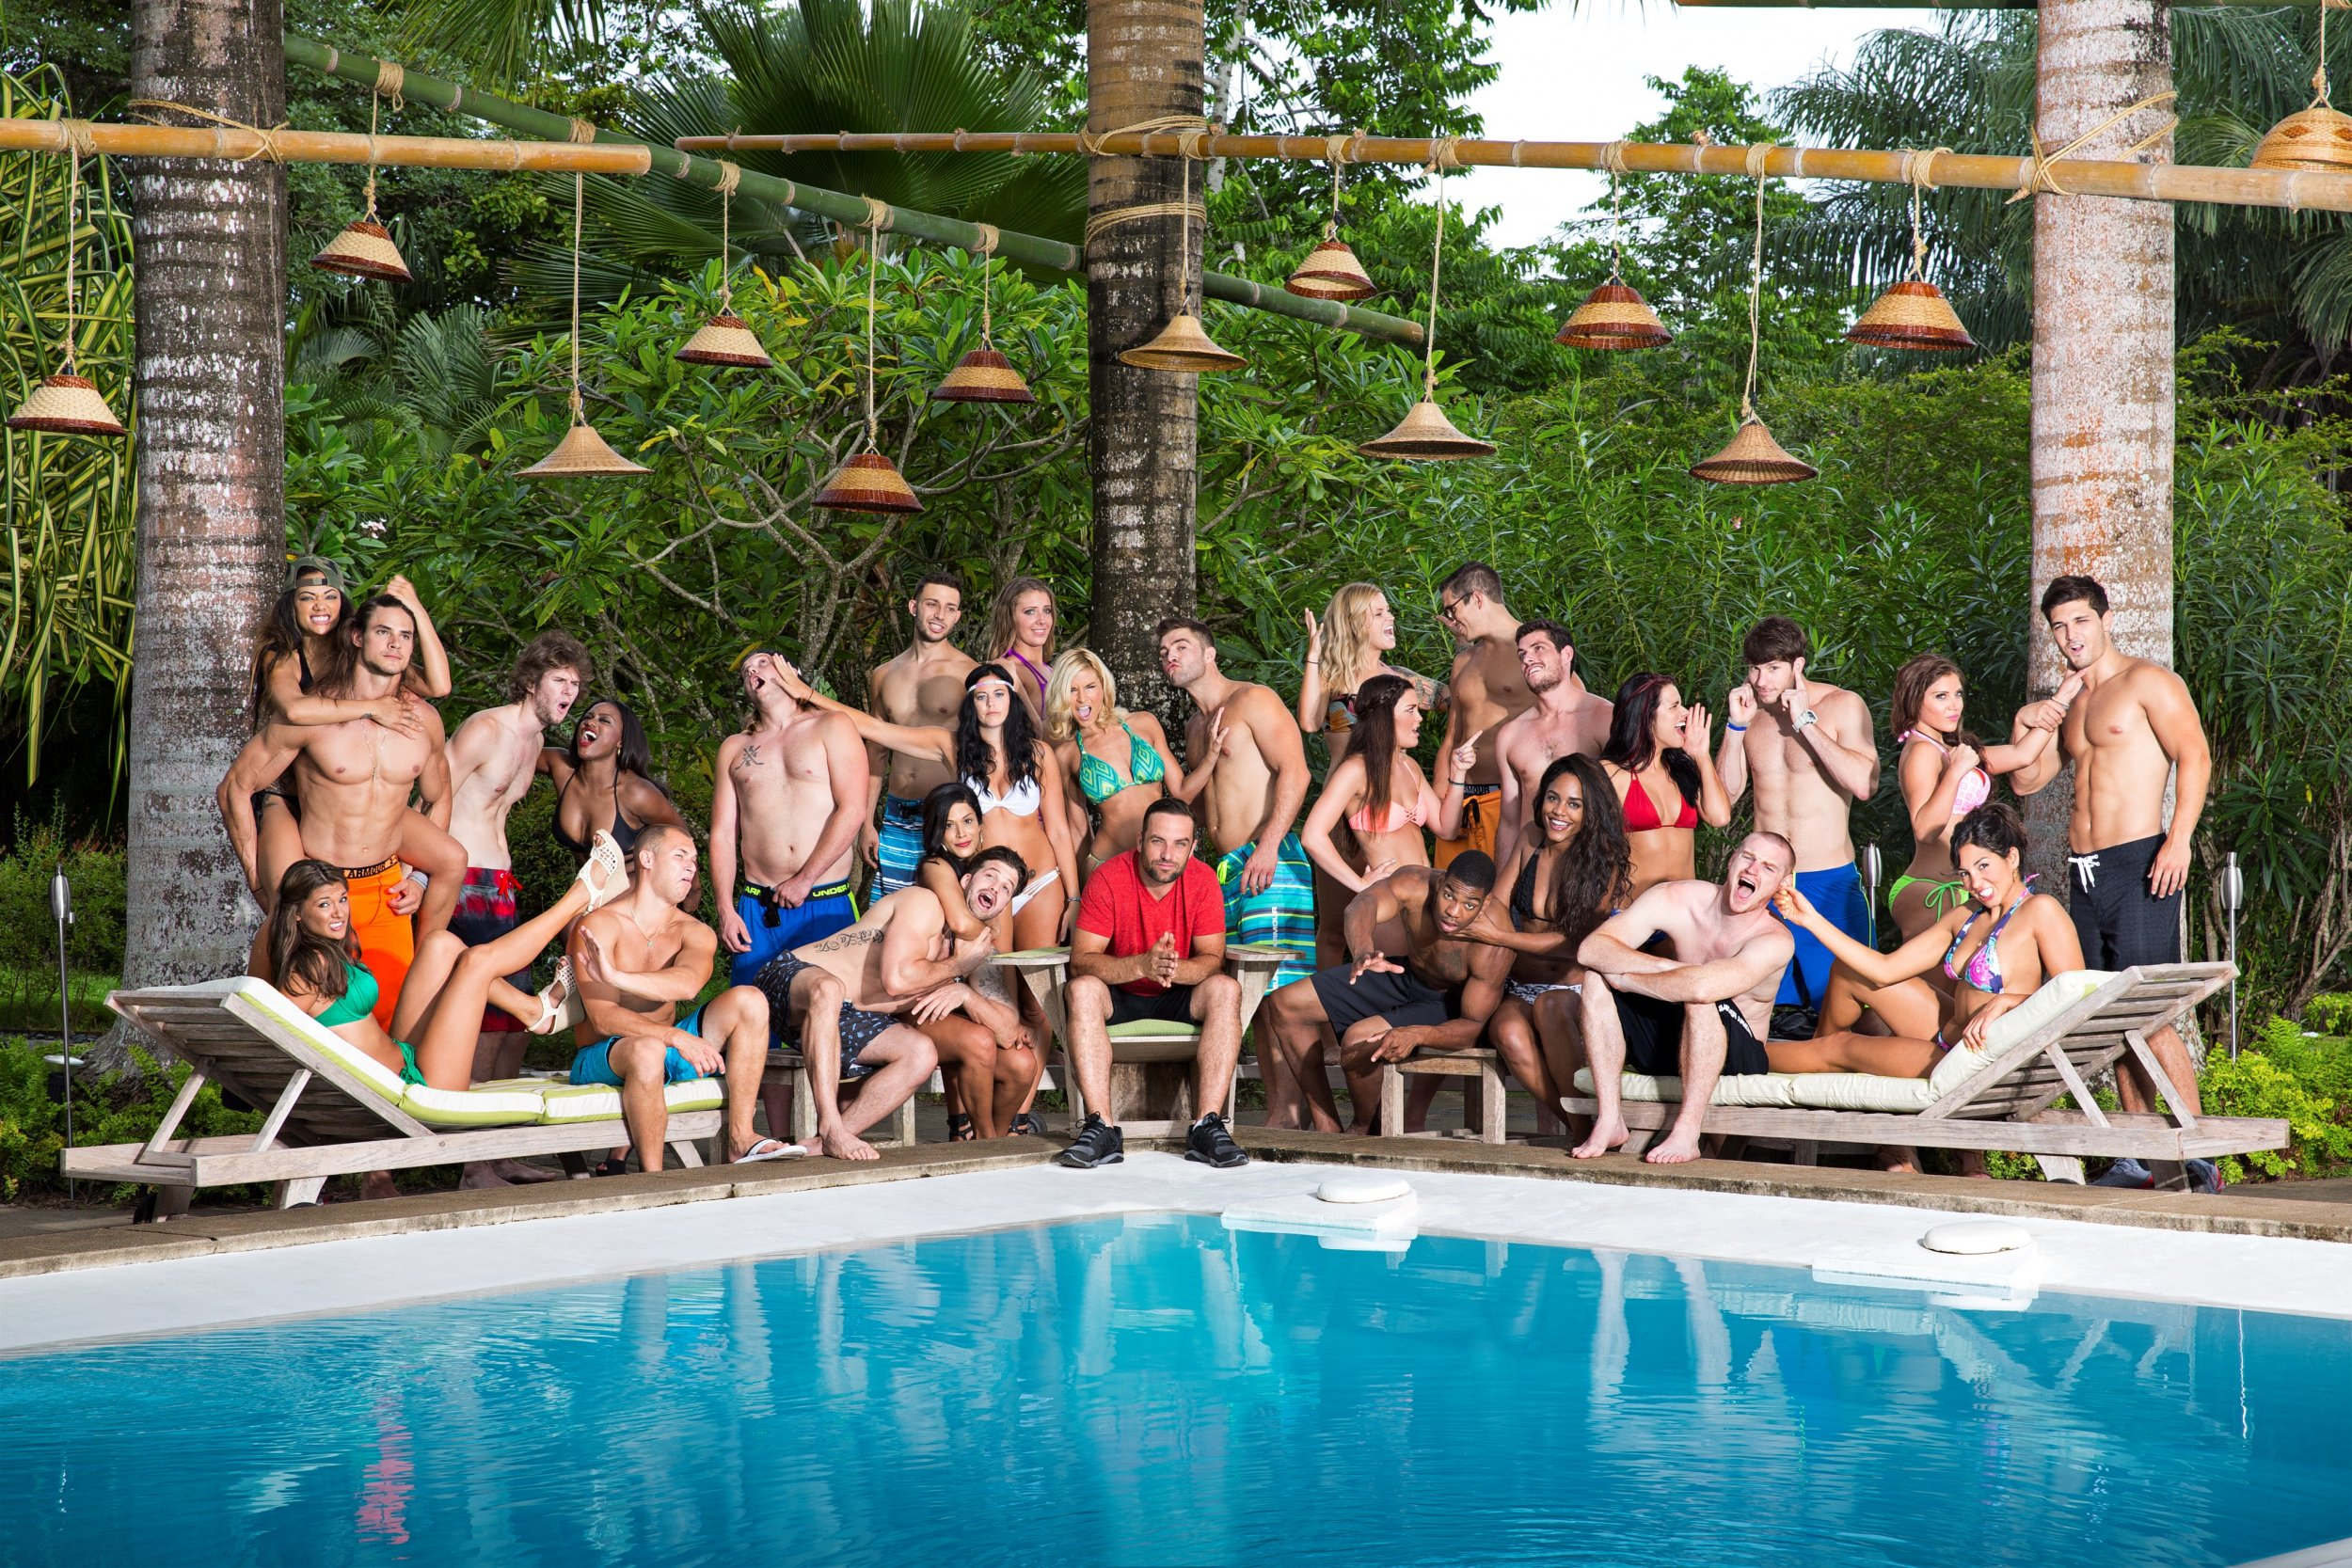 The Challenge cast